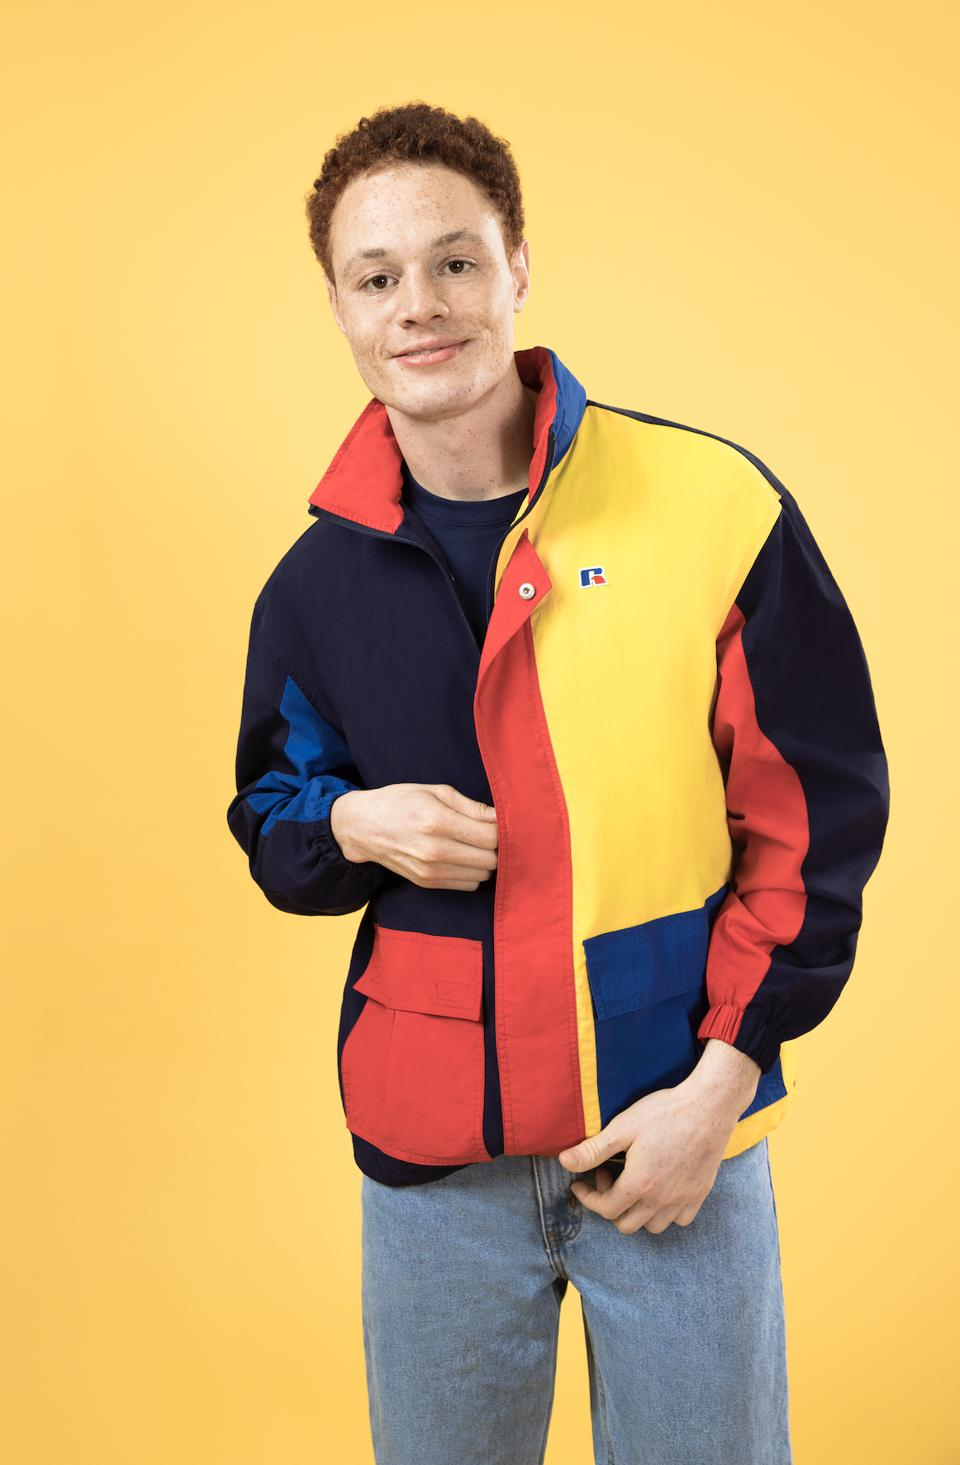 A 90's inspired look with vibrant color blocking and classic branding. Featuring a nylon shell with mesh lining and adjustable hood that stows inside the collar. Making your transition to Spring easy.